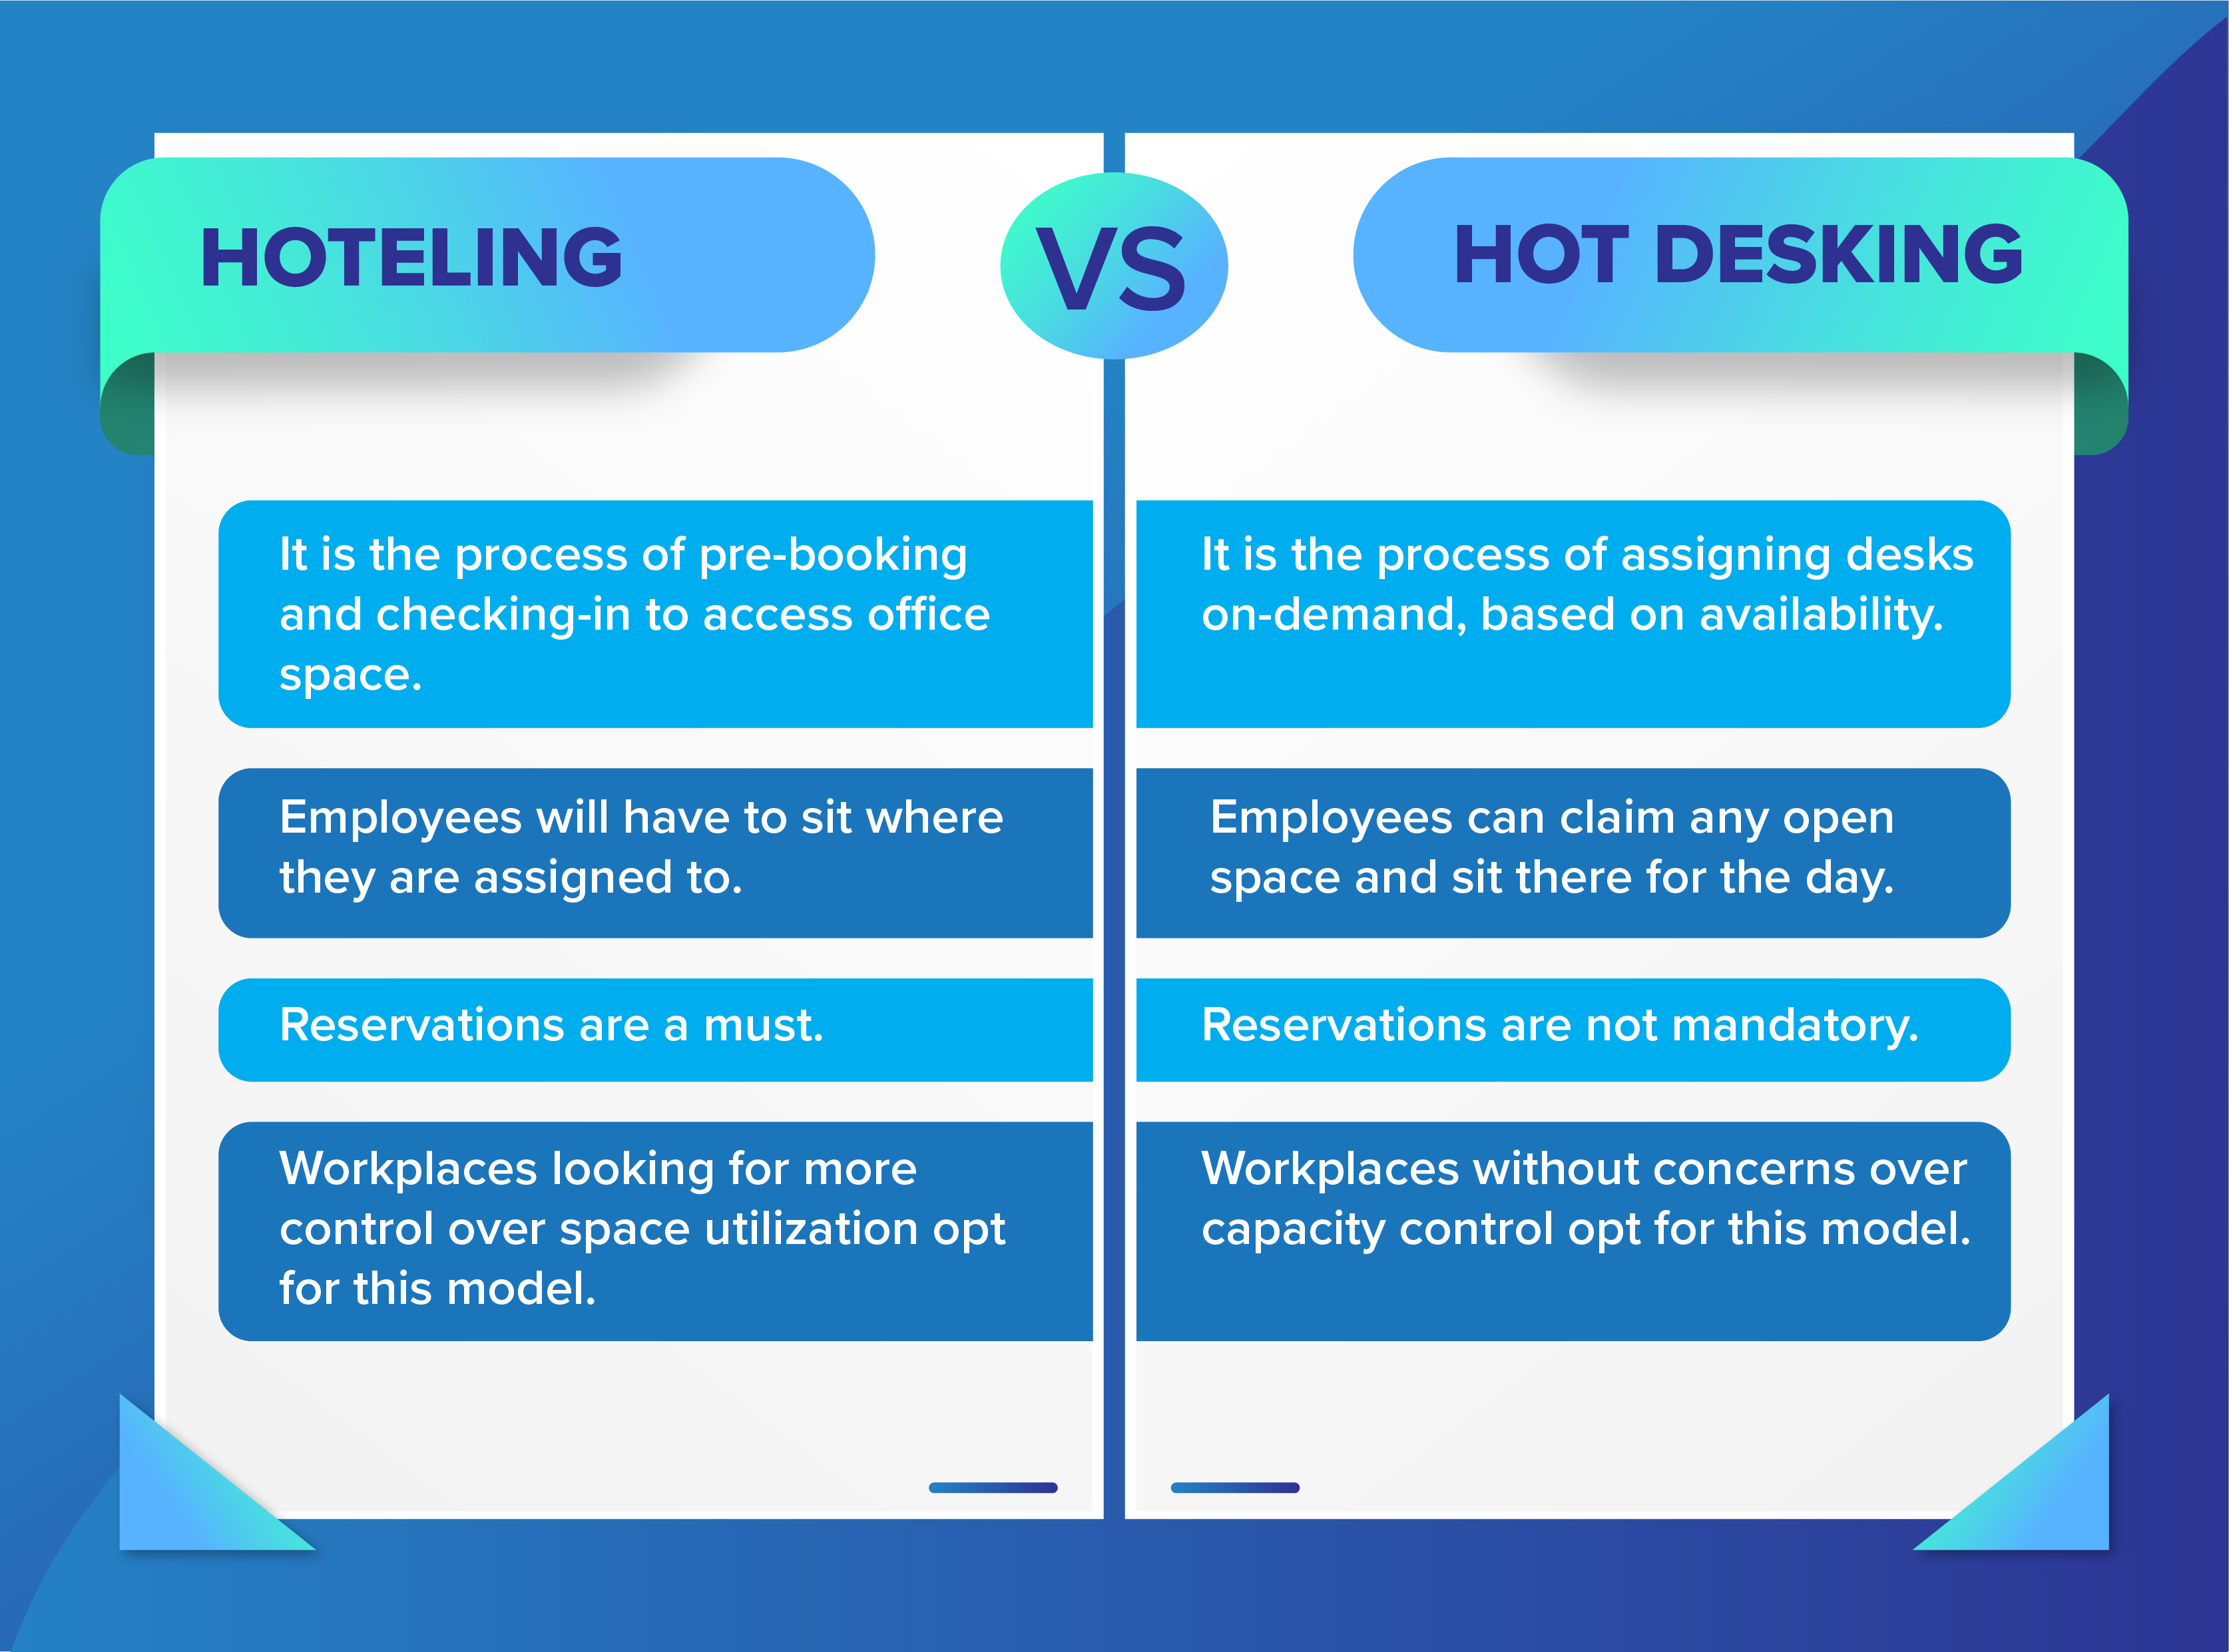 Hot desking vs hoteling